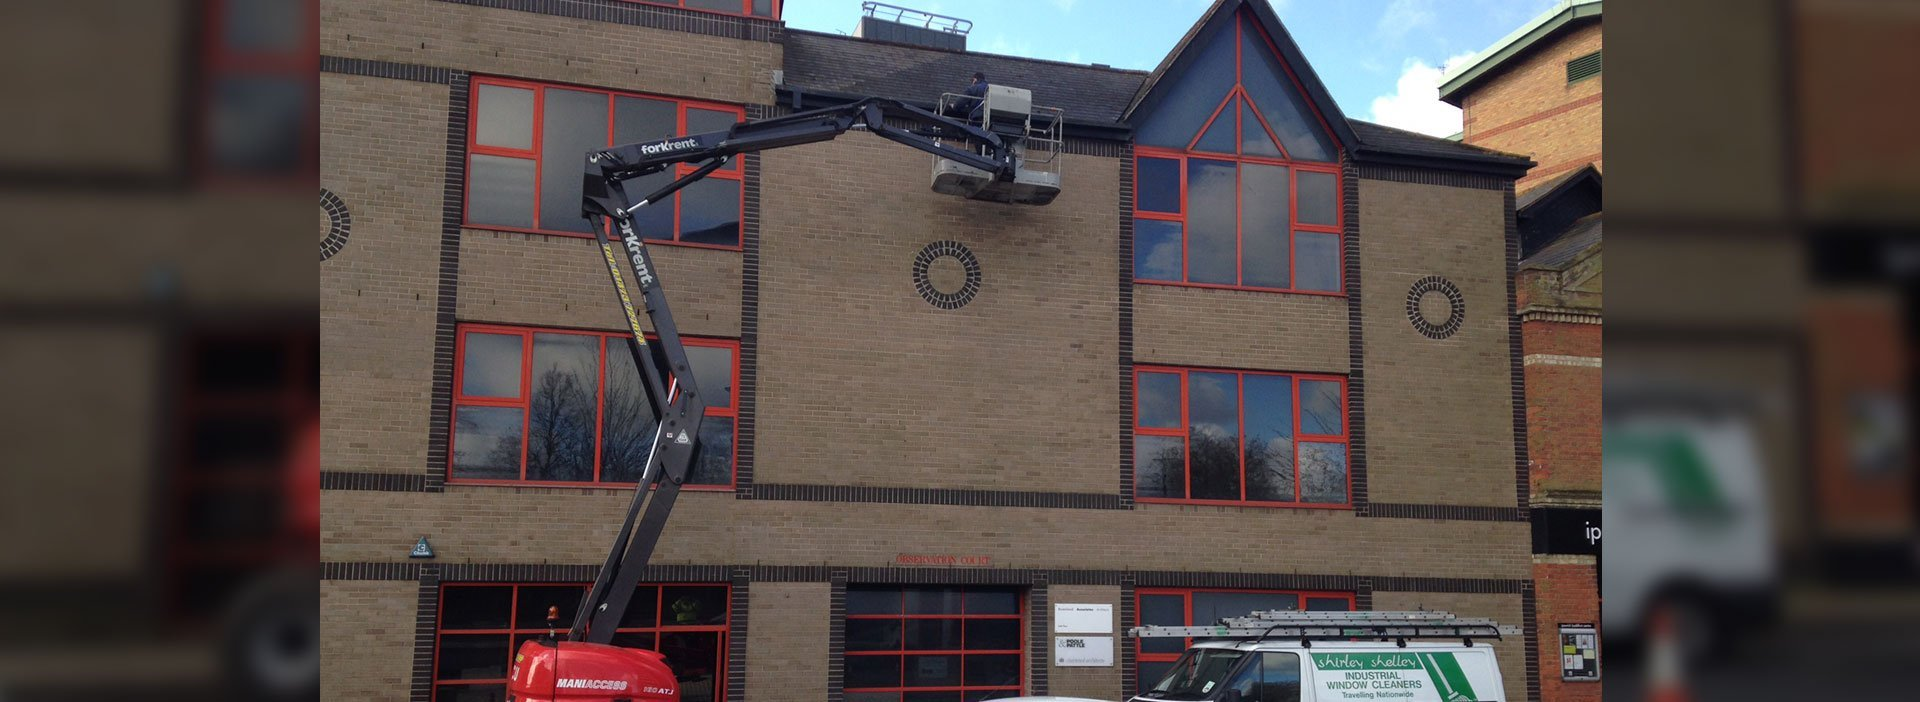 Cherry picker cleaning